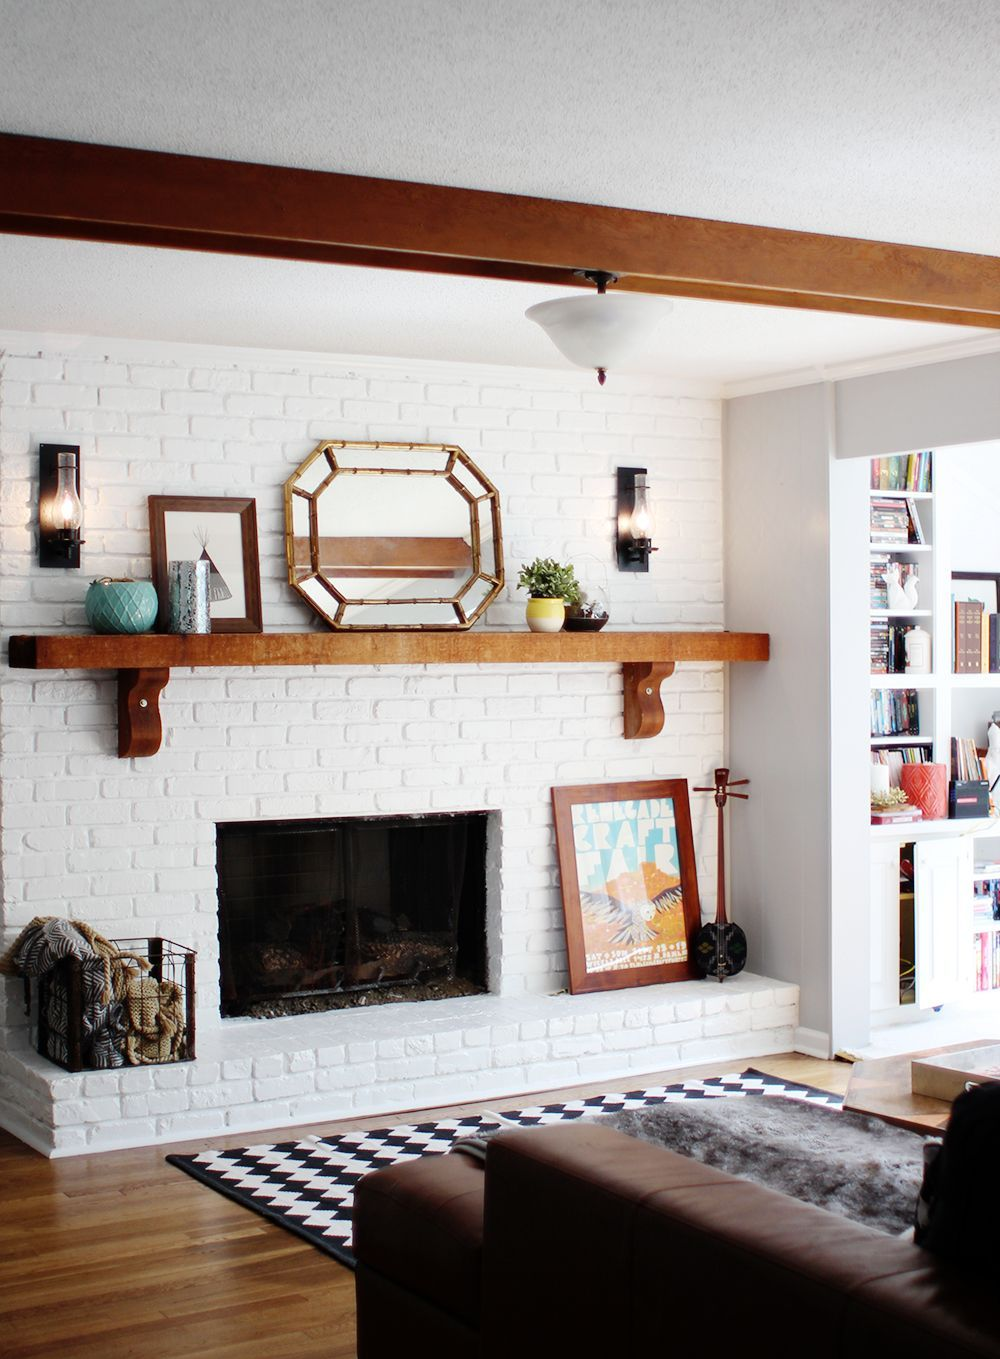 Image Result For White Brick Full Wall Fireplaces Brick Fireplace Makeover White Brick Fireplace Home Decor